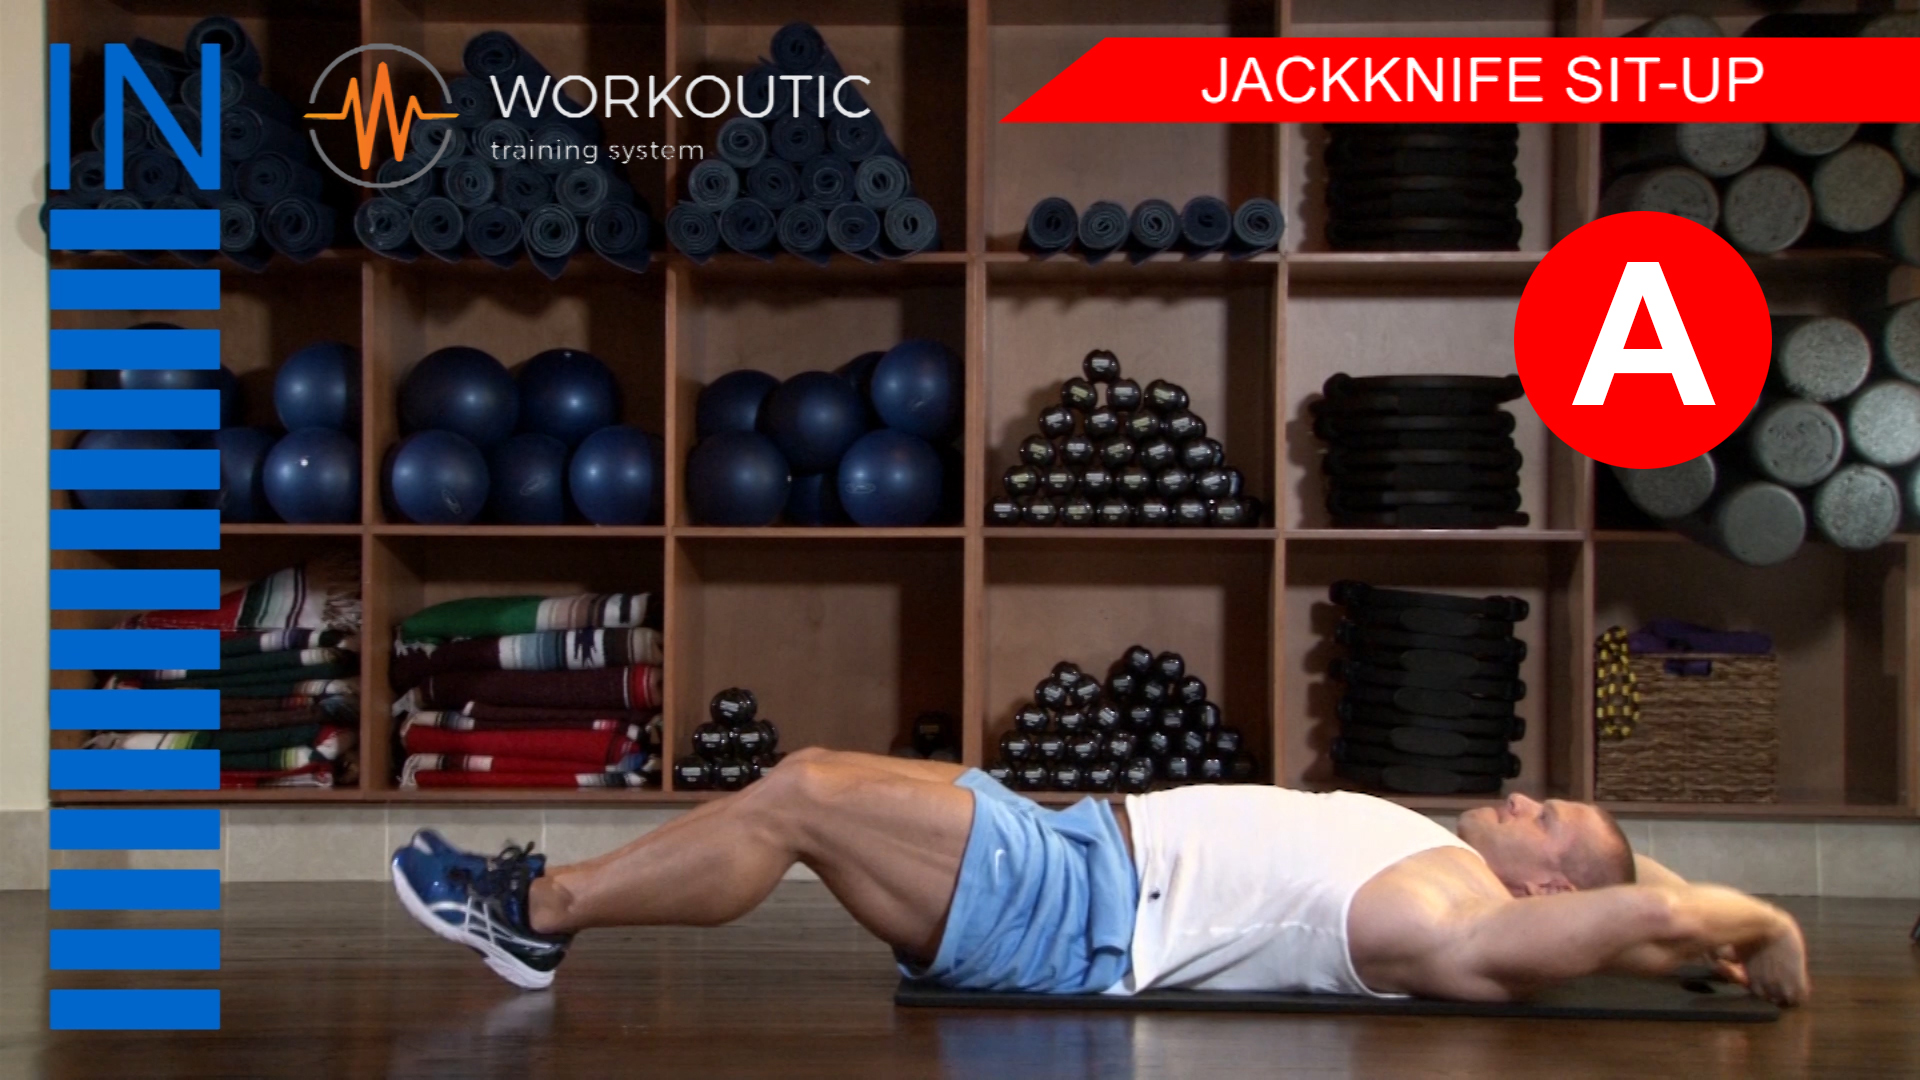 Abs Exercises - Workutic - 6 pack special - Jackknife Sit Up Inhale